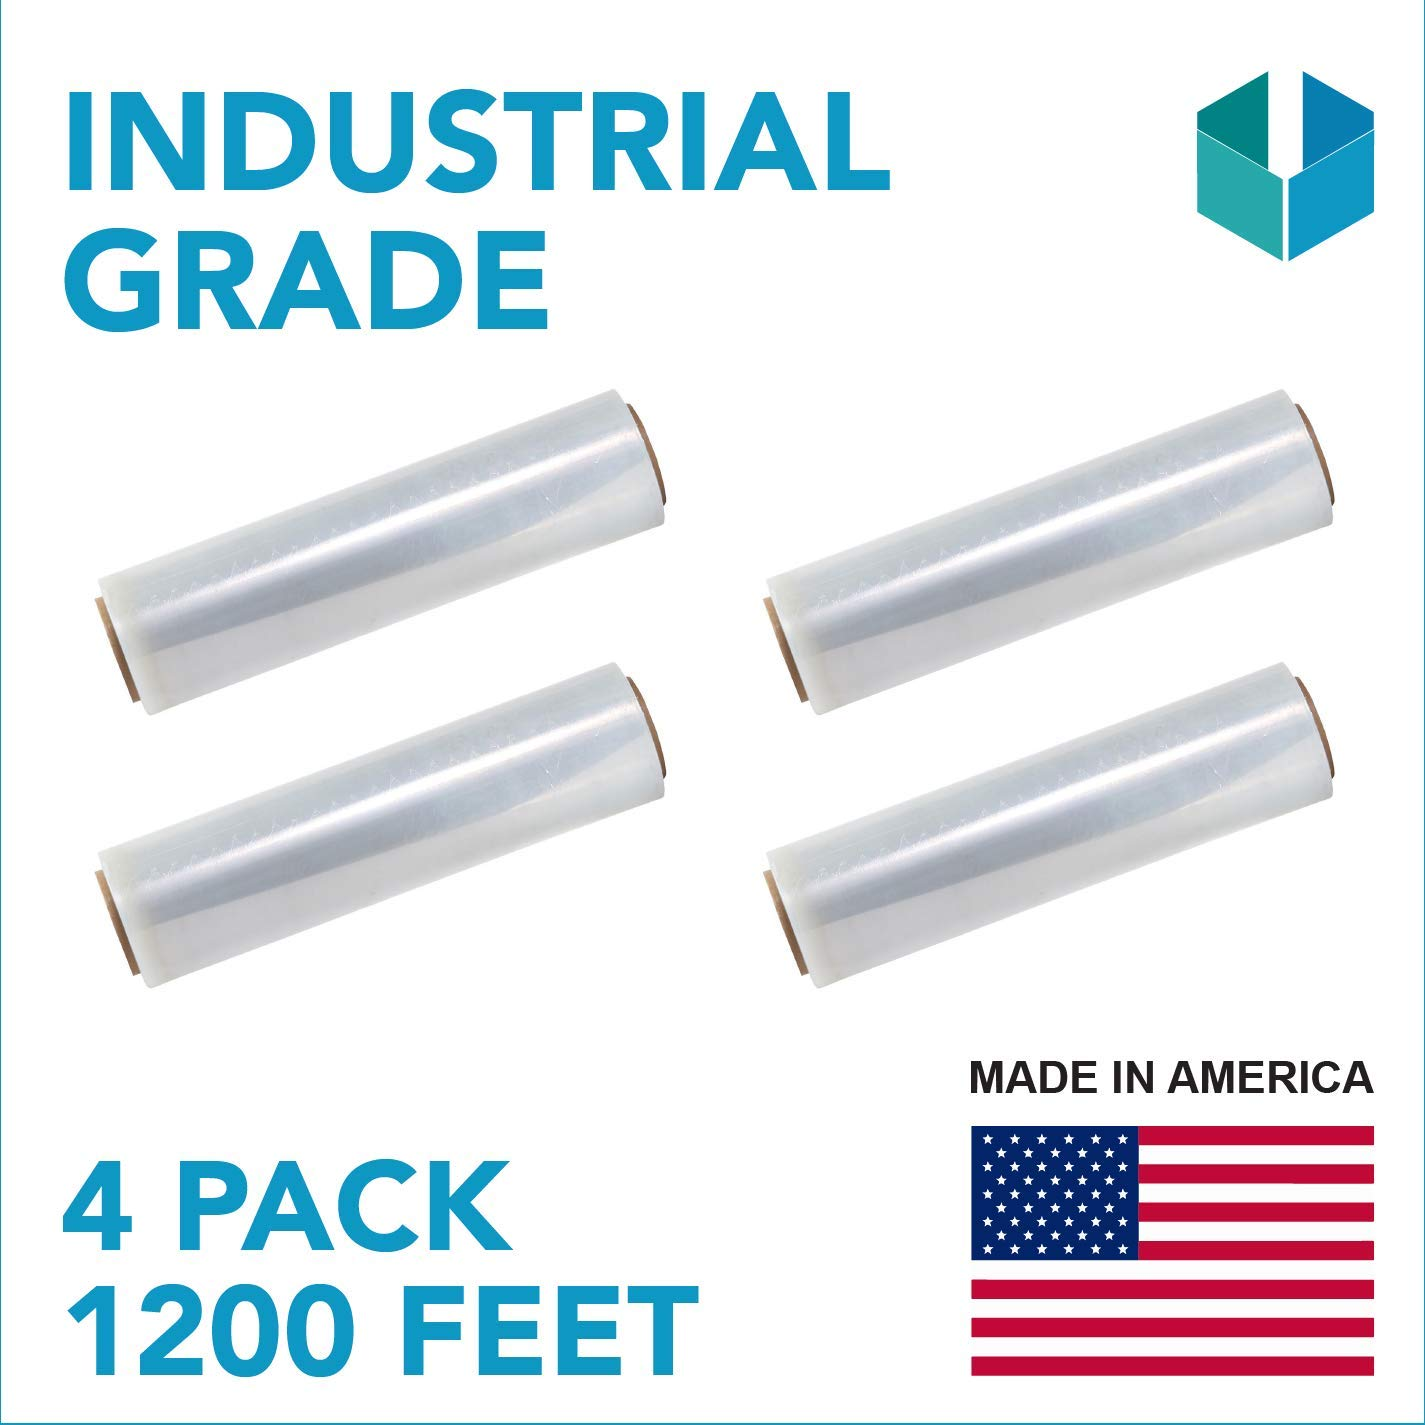 18''x 1200 FT Roll - 80 Gauge Thick 28 Lbs per Case, Stretch wrap Moving & Packing Wrap. Industrial Strength, Plastic Pallet Shrink Film Ideal For Furniture, Boxes, Pallets... (CLEAR) (4 PACK)